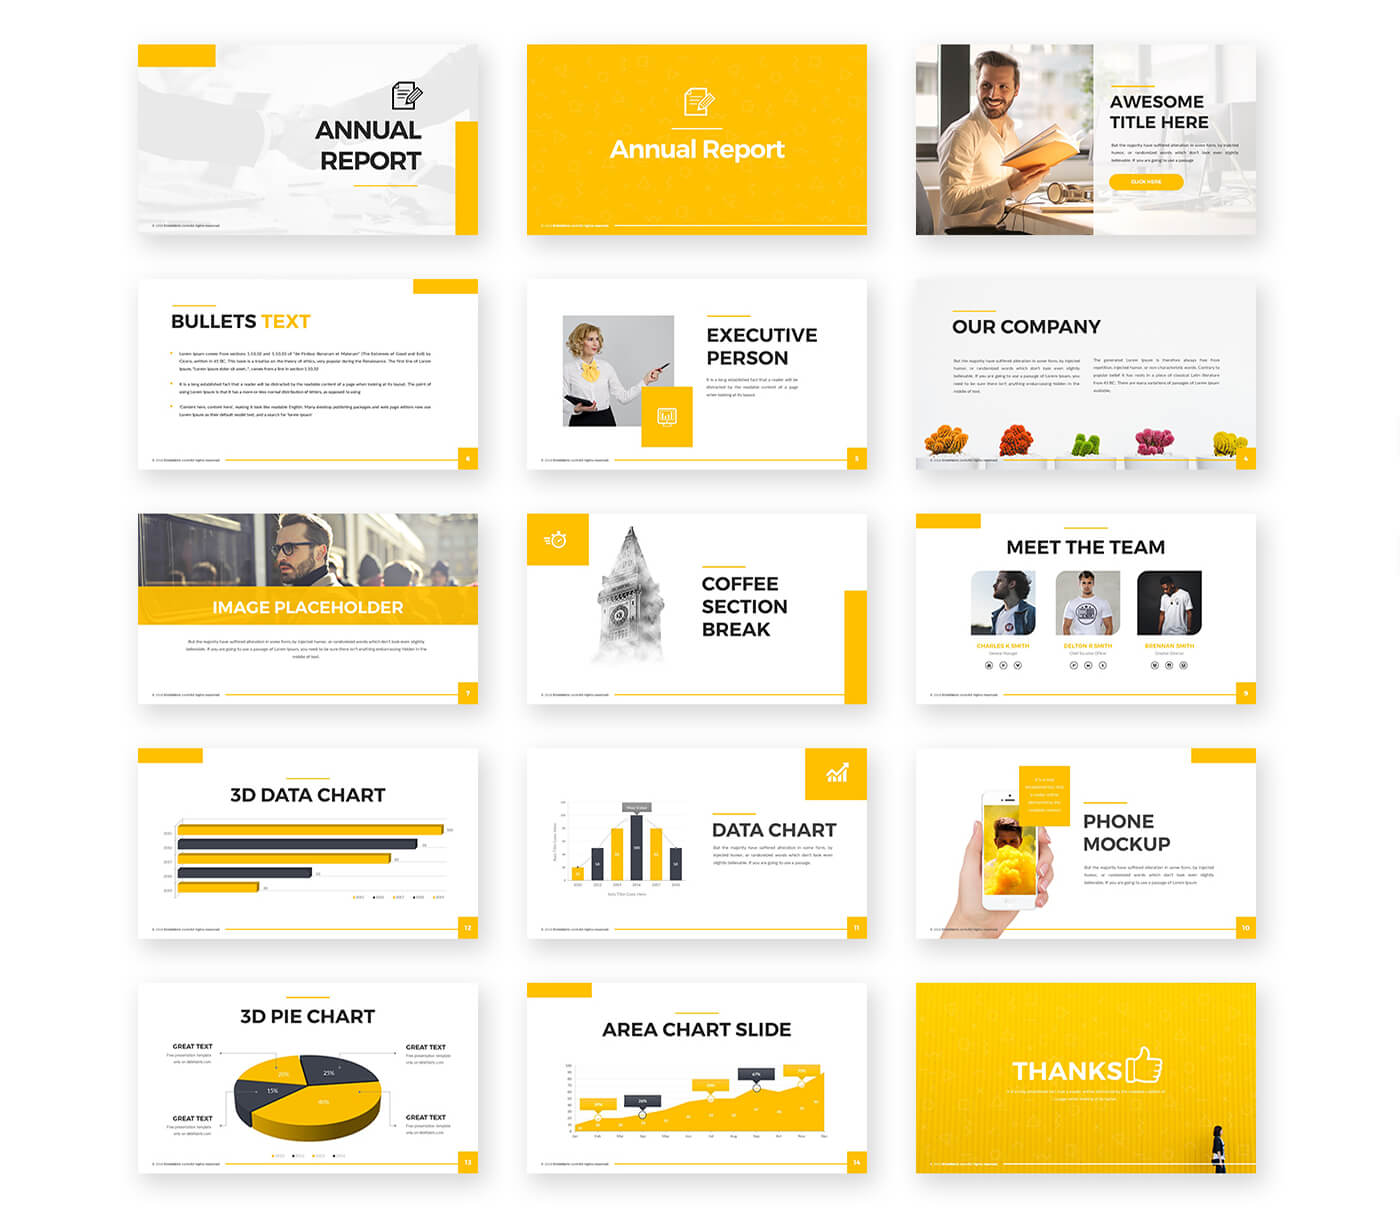 Annual Report Powerpoint Template – Free Presentations With Regard To Annual Report Ppt Template